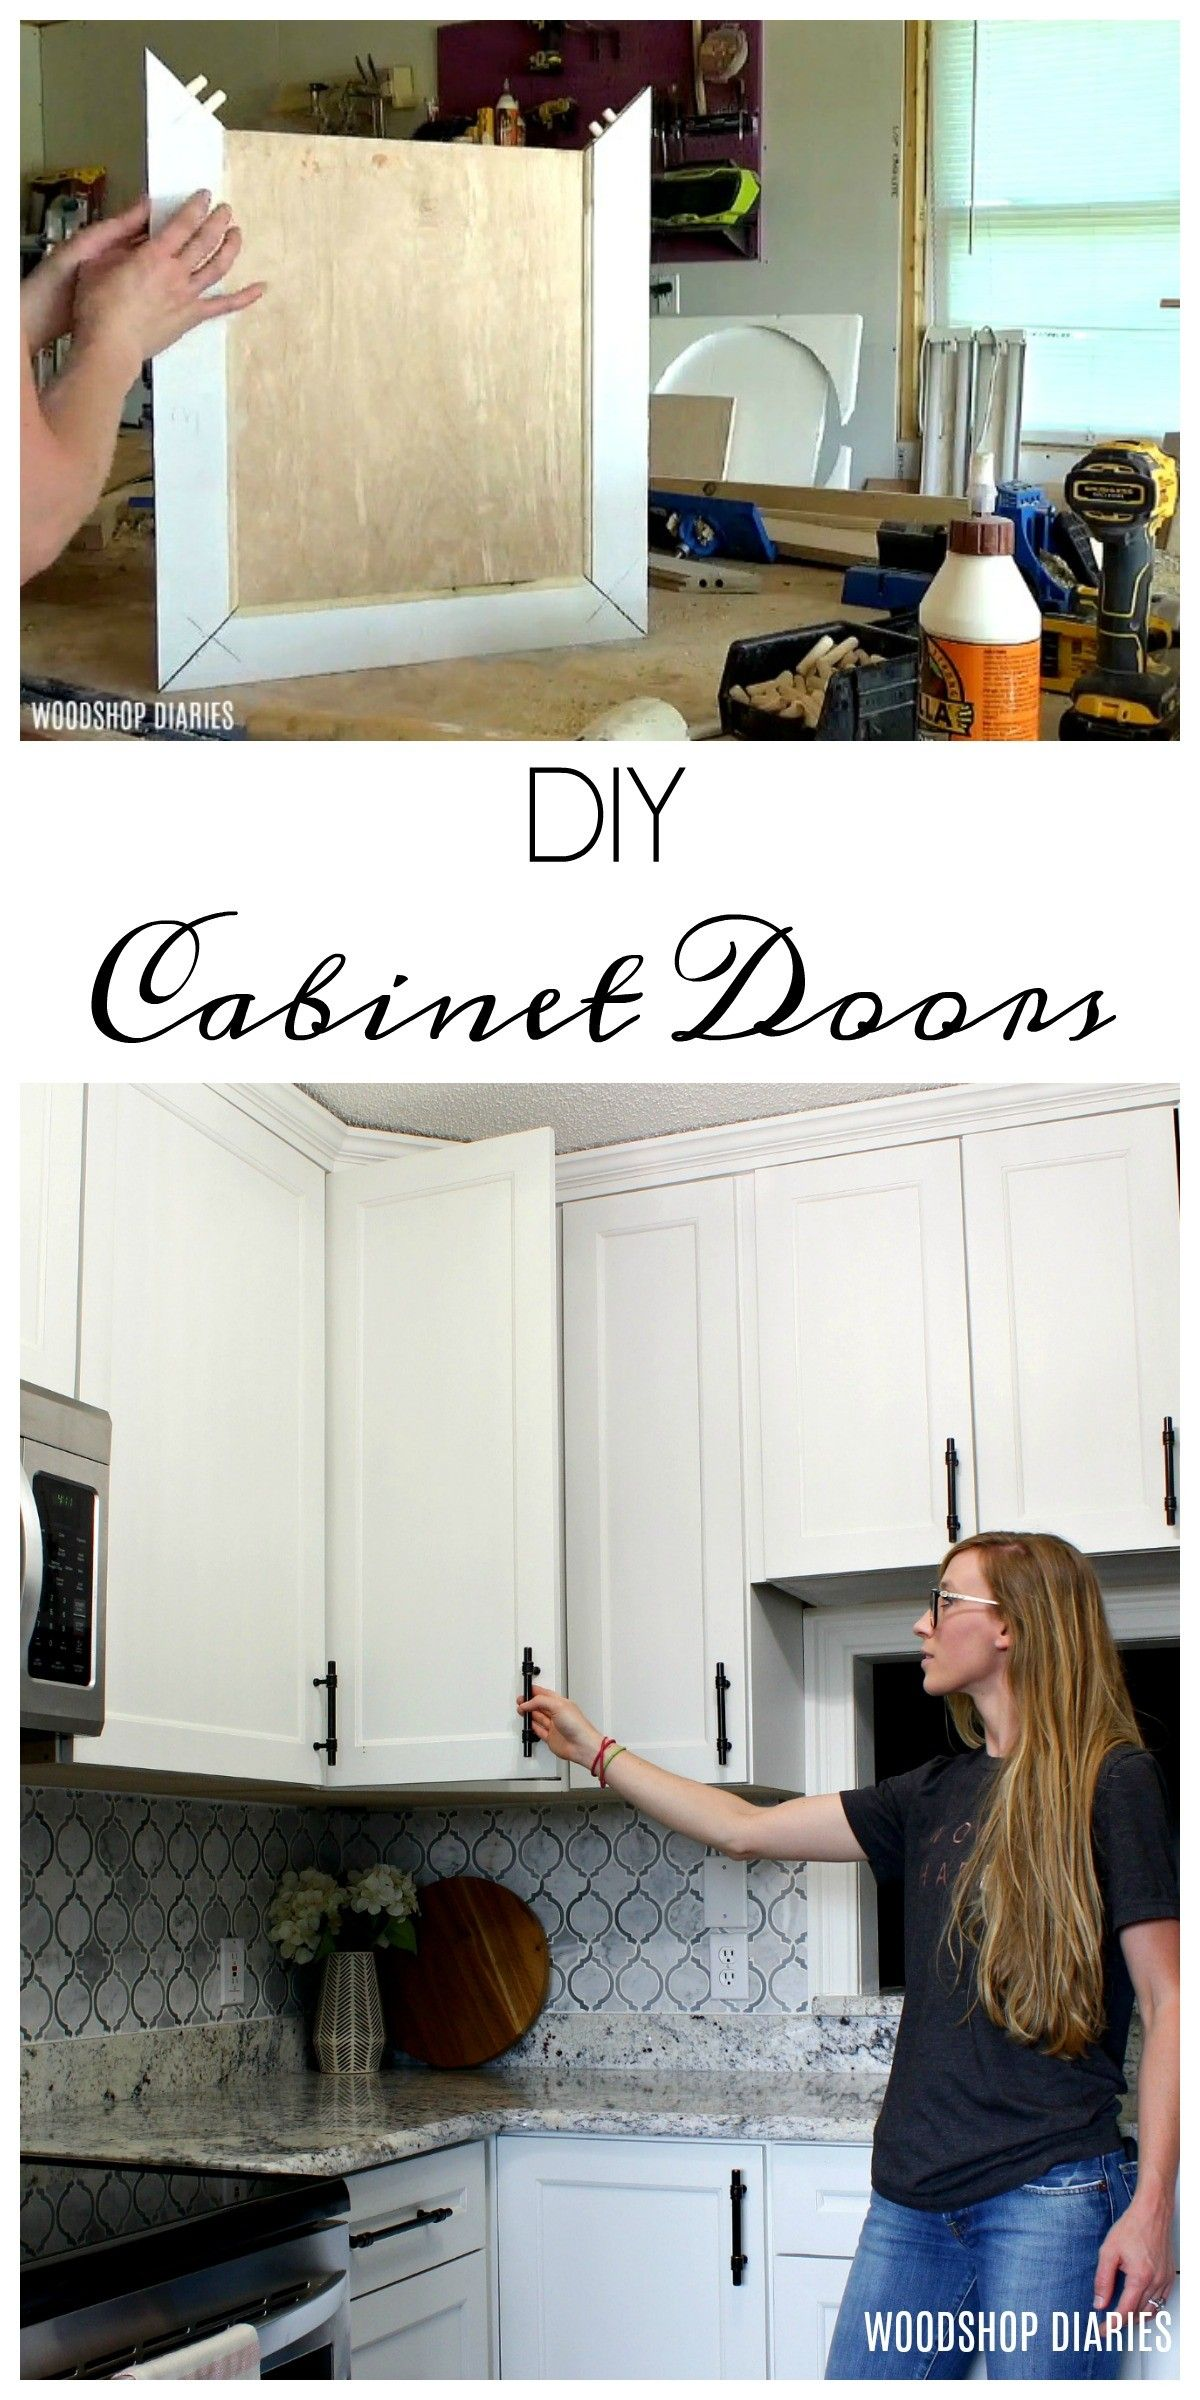 How To Make Diy Cabinet Doors Without Fancy Router Bits In 2020 Diy Cabinet Doors Diy Cabinets Building Kitchen Cabinets